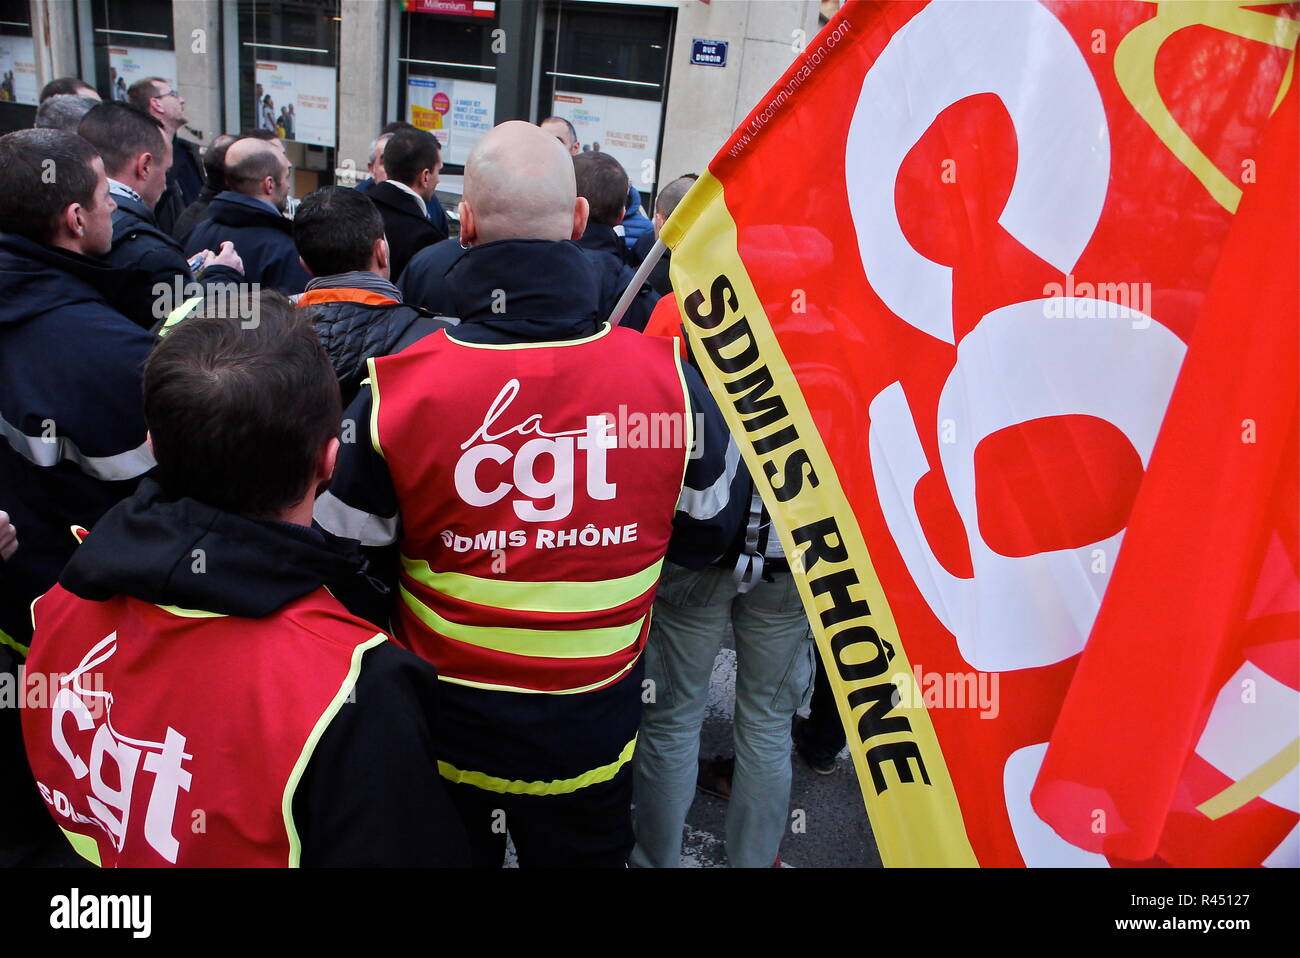 Firefigheters protest working conditions decline, Lyon, France - Stock Image